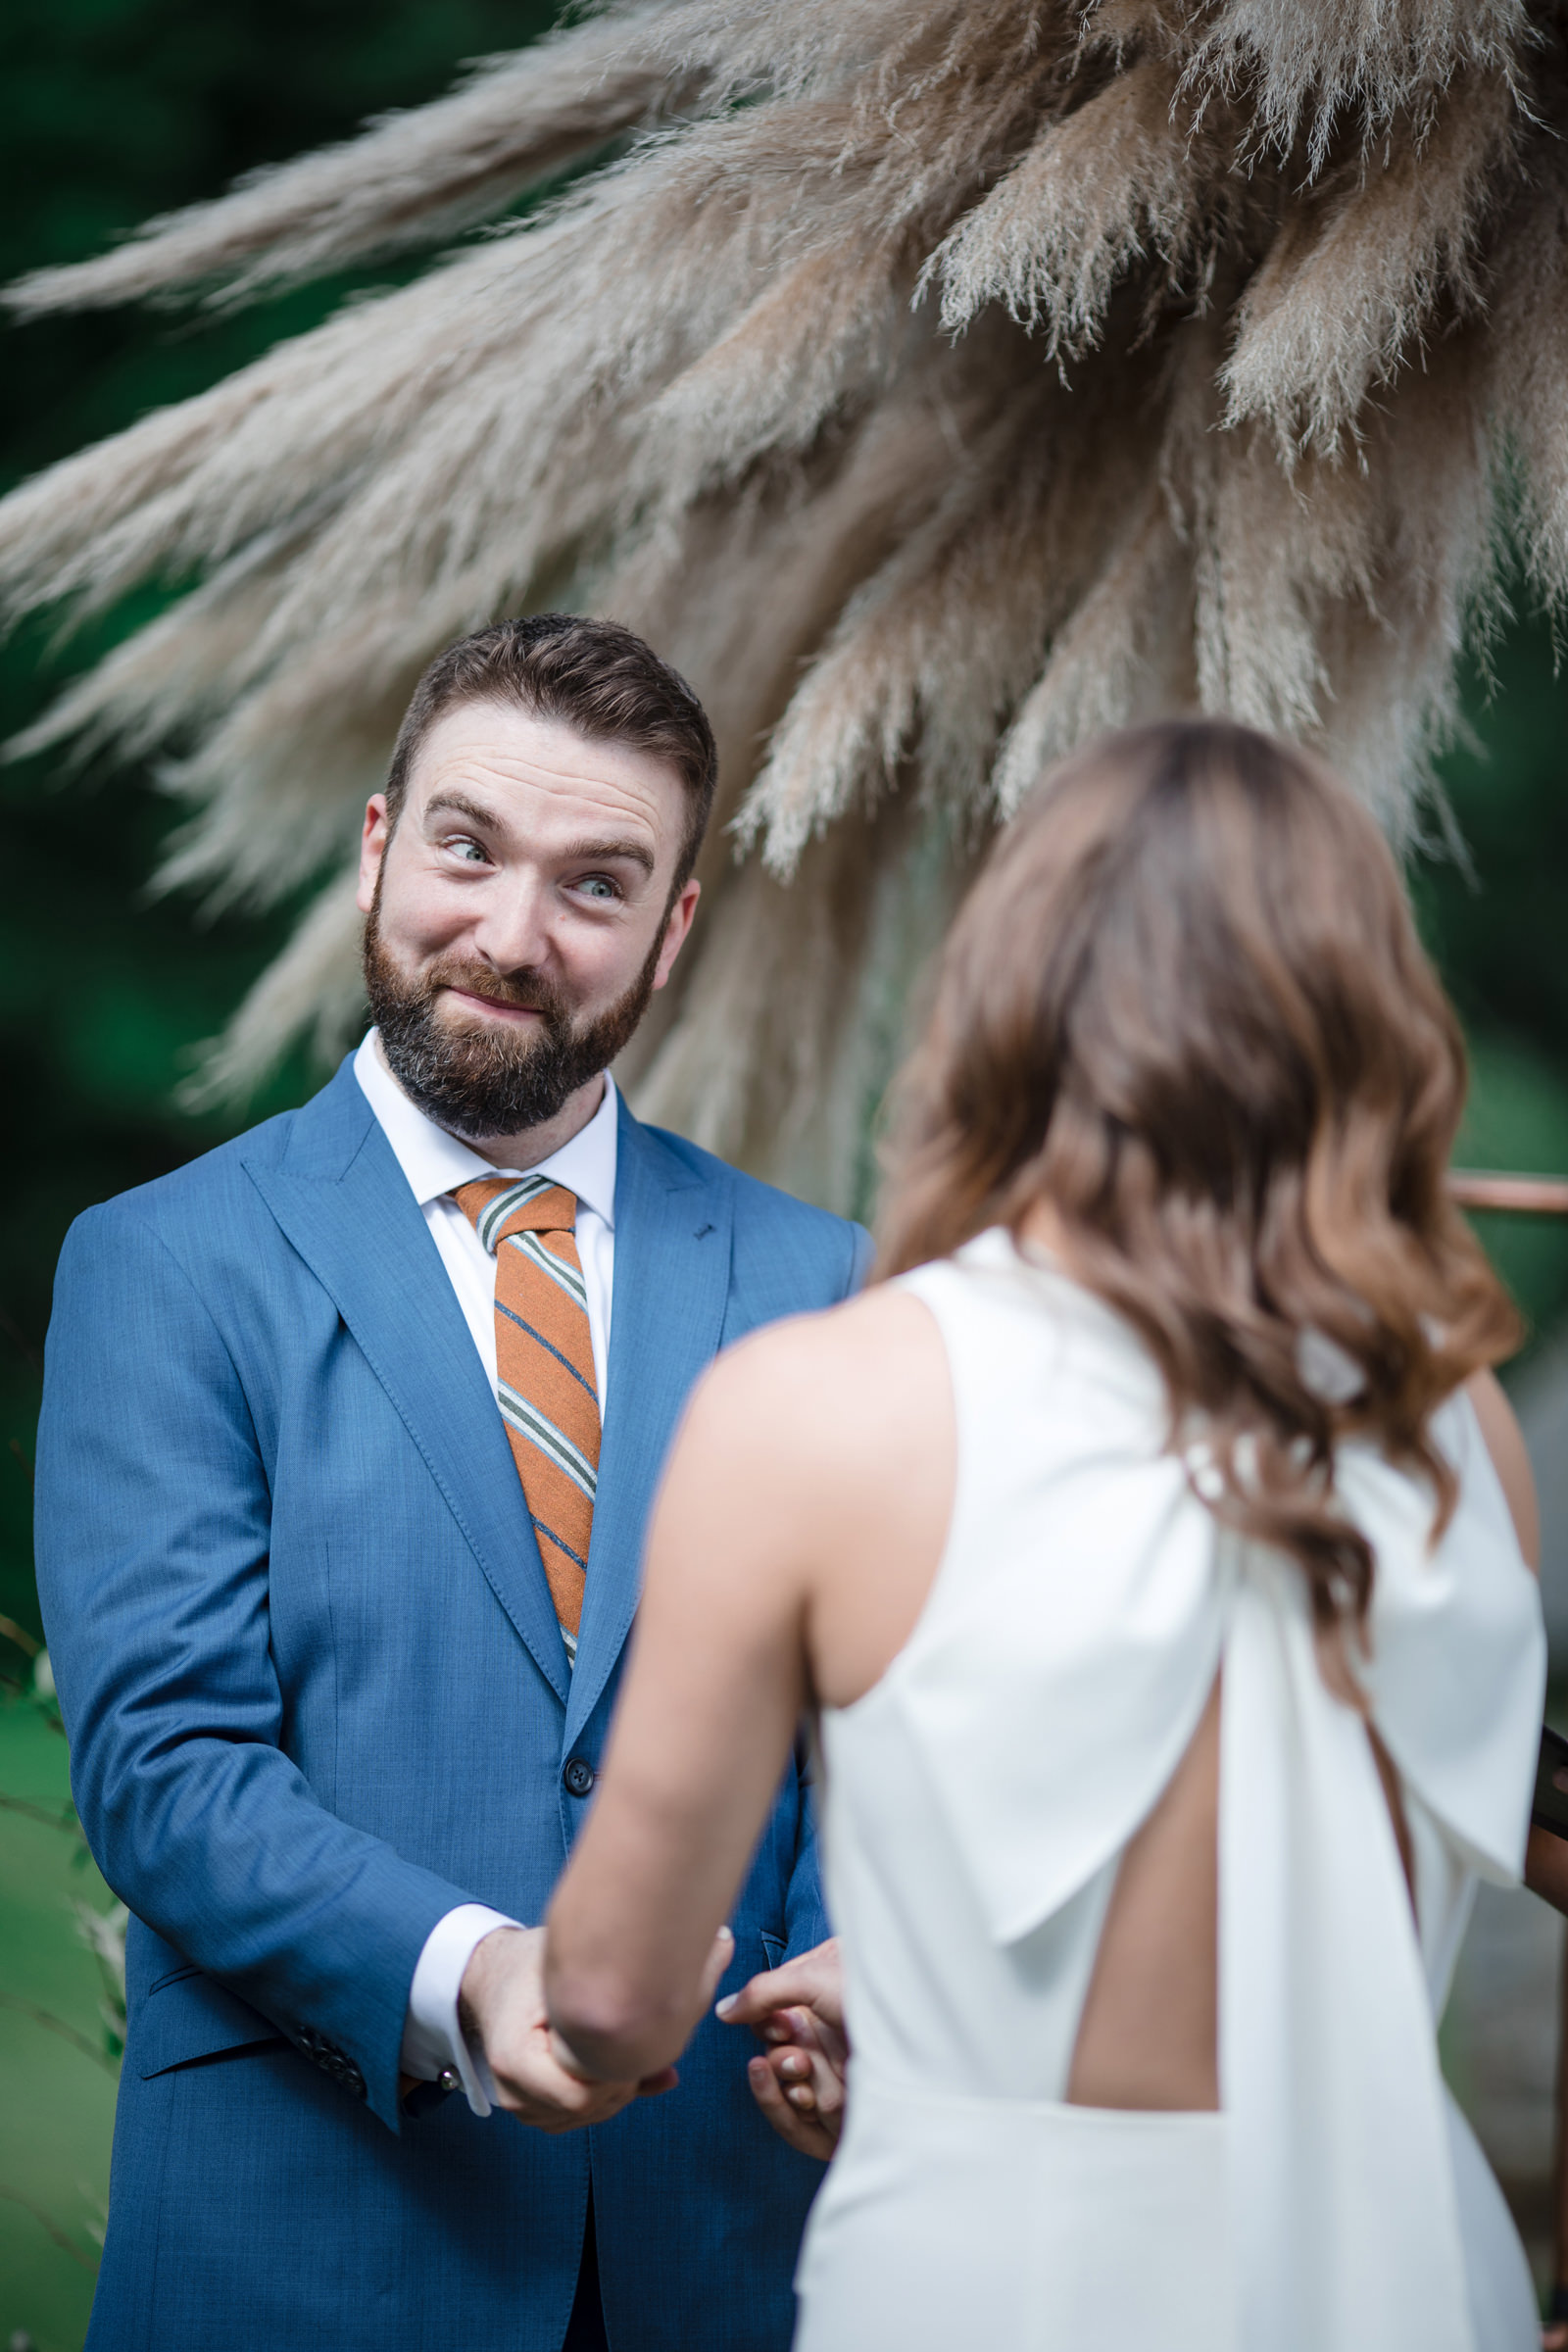 Groom reacts to bride at wedding ceremony, by Susan Stripling